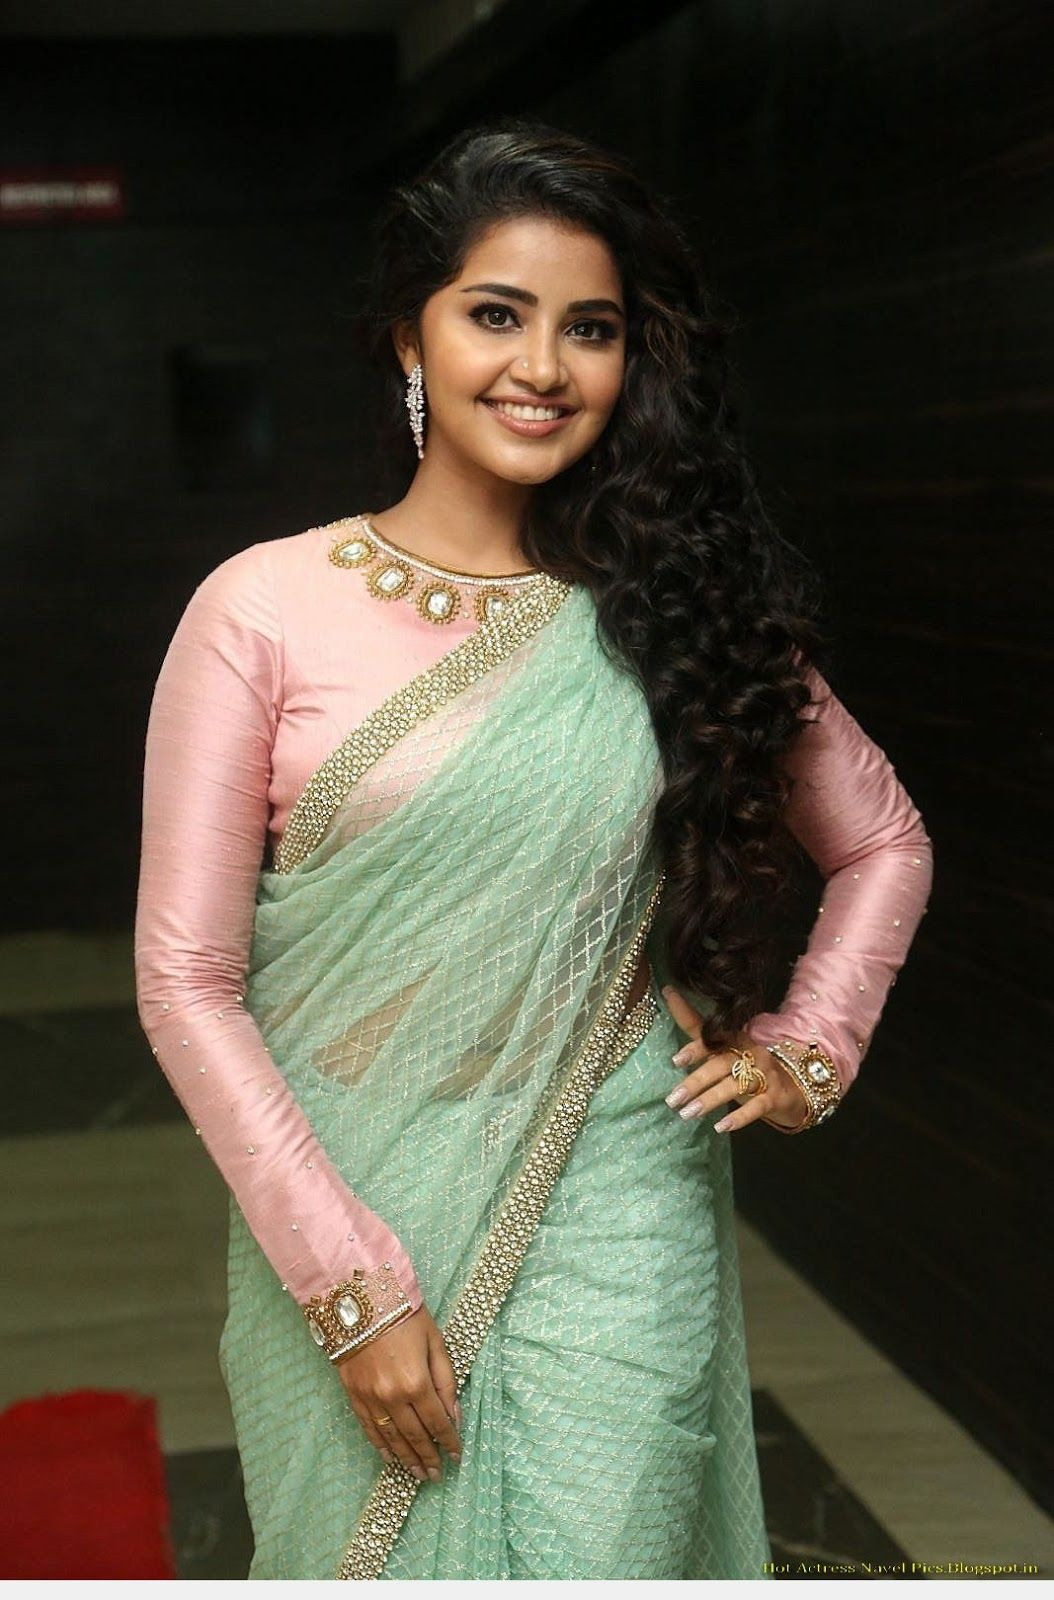 Latest Pictures Anupama Parameswaran Latest Hot Navel Visible In Green Transparent